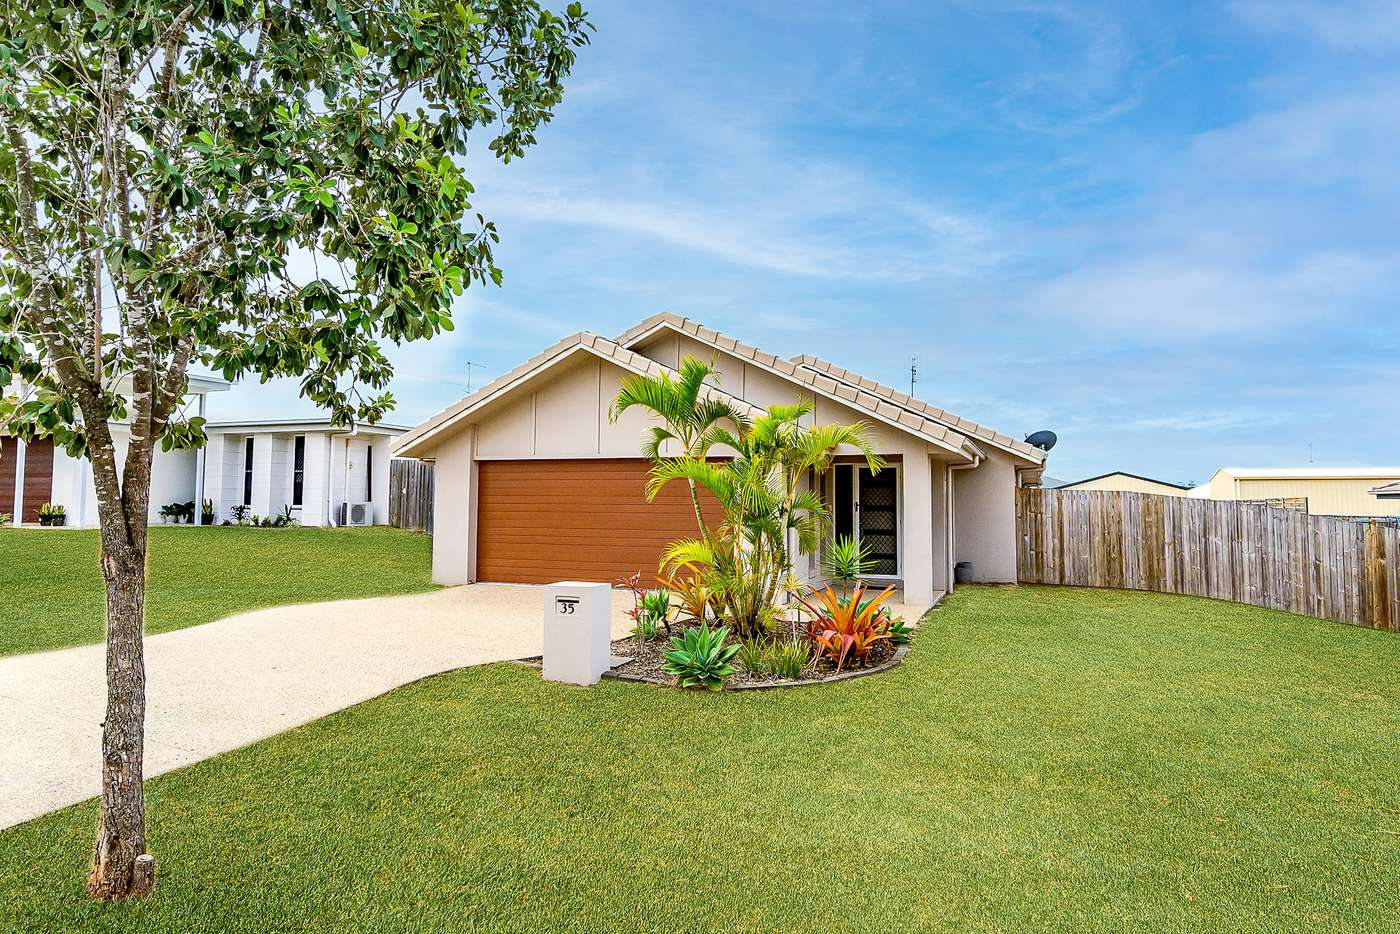 Main view of Homely house listing, 35 Briffney Street, Kirkwood QLD 4680